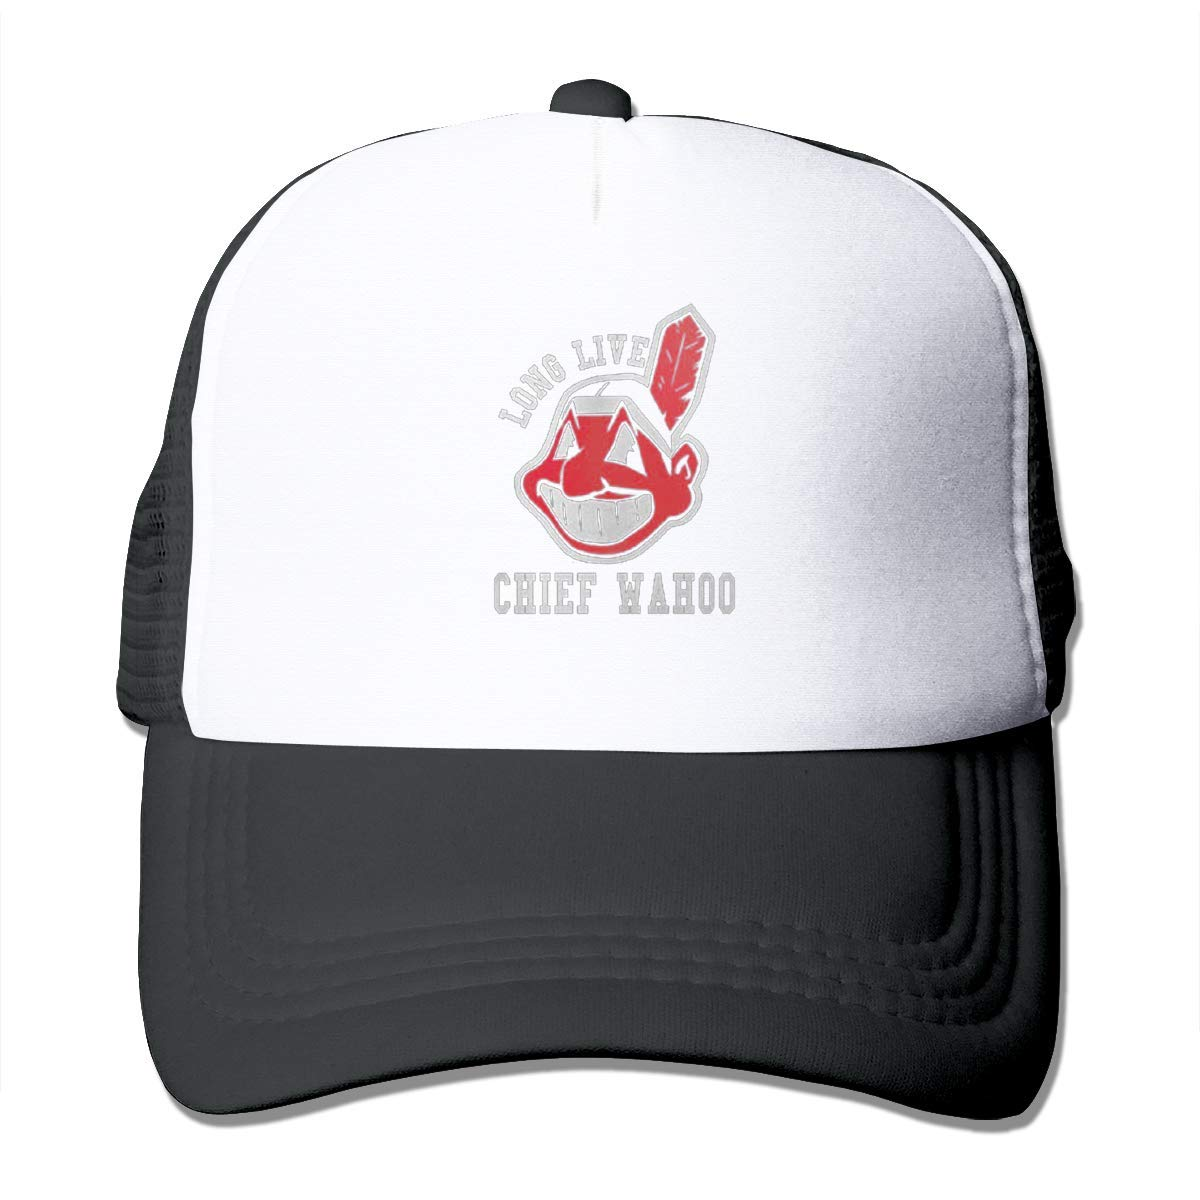 Classic Baseball Cap,Long-Live-Chief-Wahoo Adjustable Two Tone Cotton Twill Mesh Back Trucker Hats Black